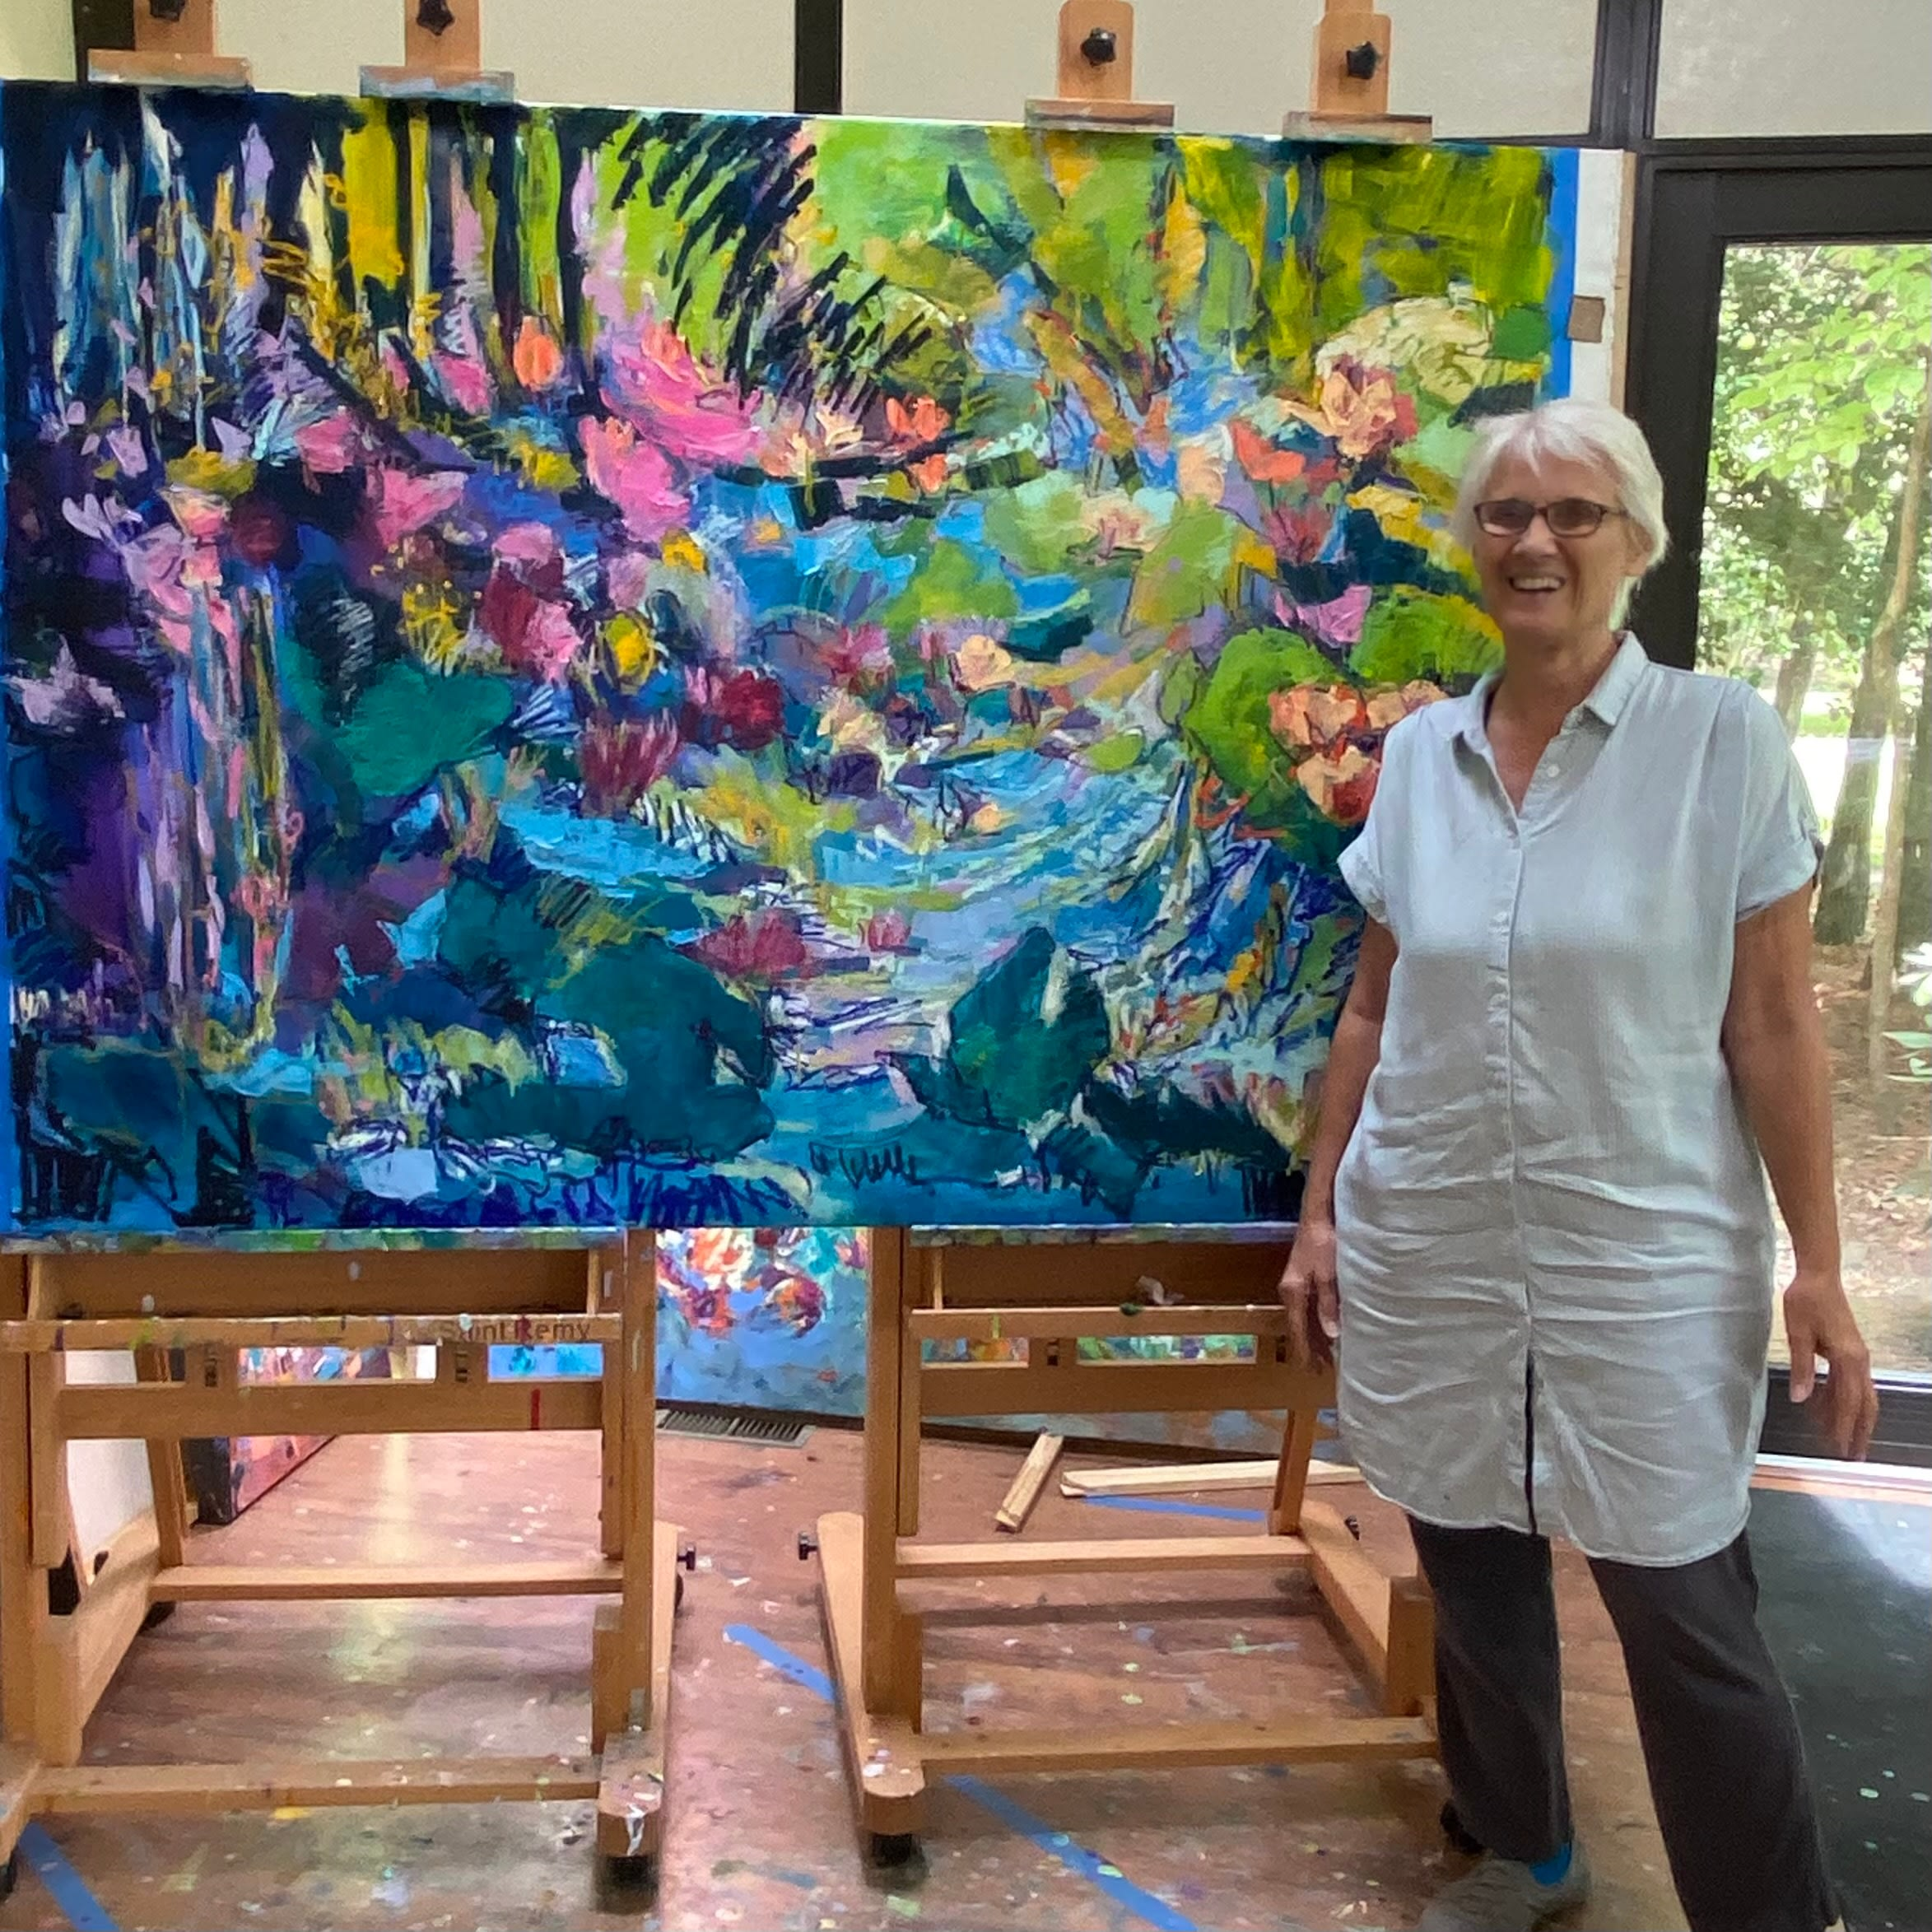 <div class='title'>           See my story of Becoming Faith         </div>                 <div class='description'>           Manifesting Dreams with a Paintbrush and a Prayer         </div>